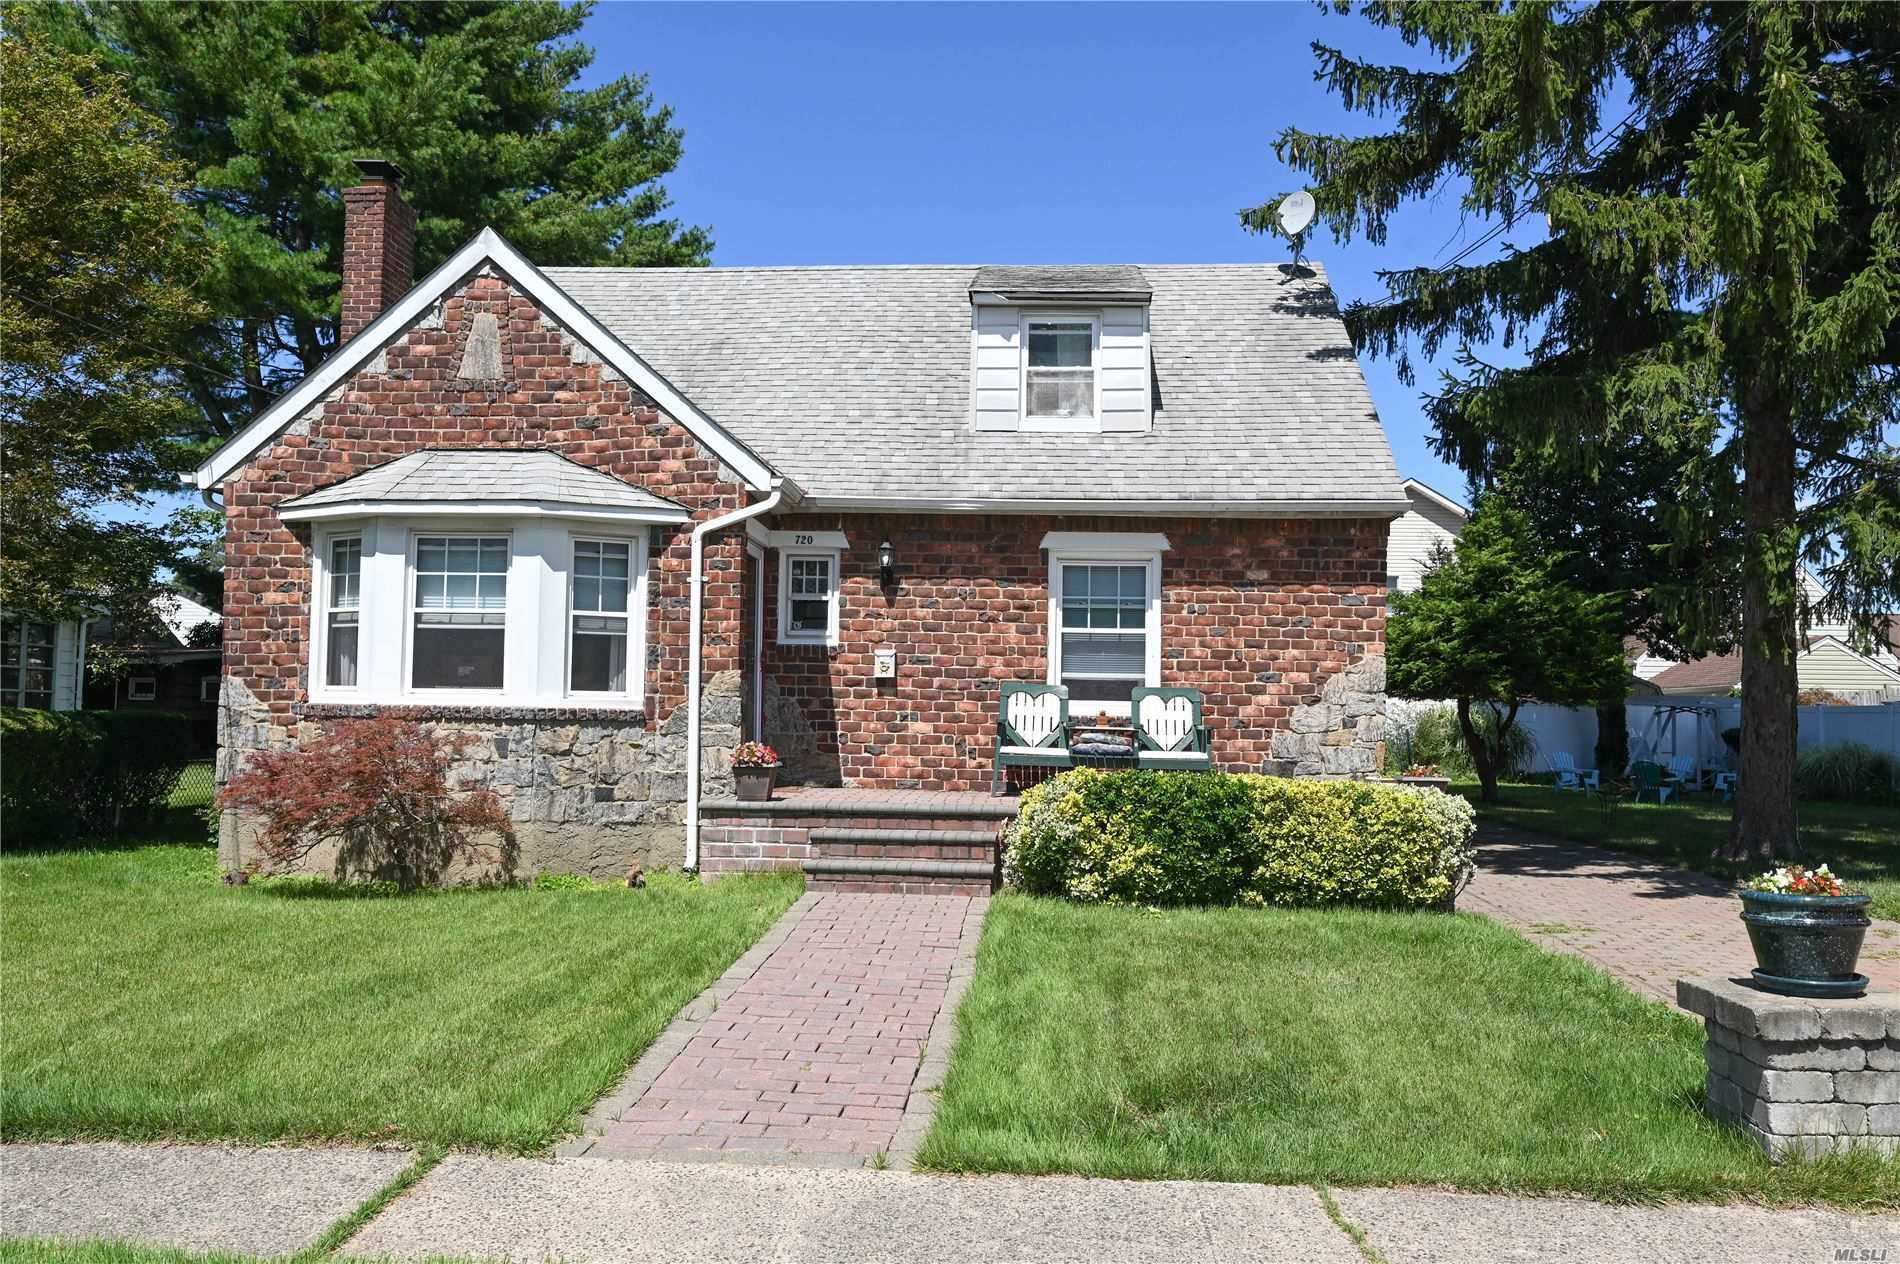 720 Iris Street, Franklin Square, NY 11010 - MLS#: 3244796